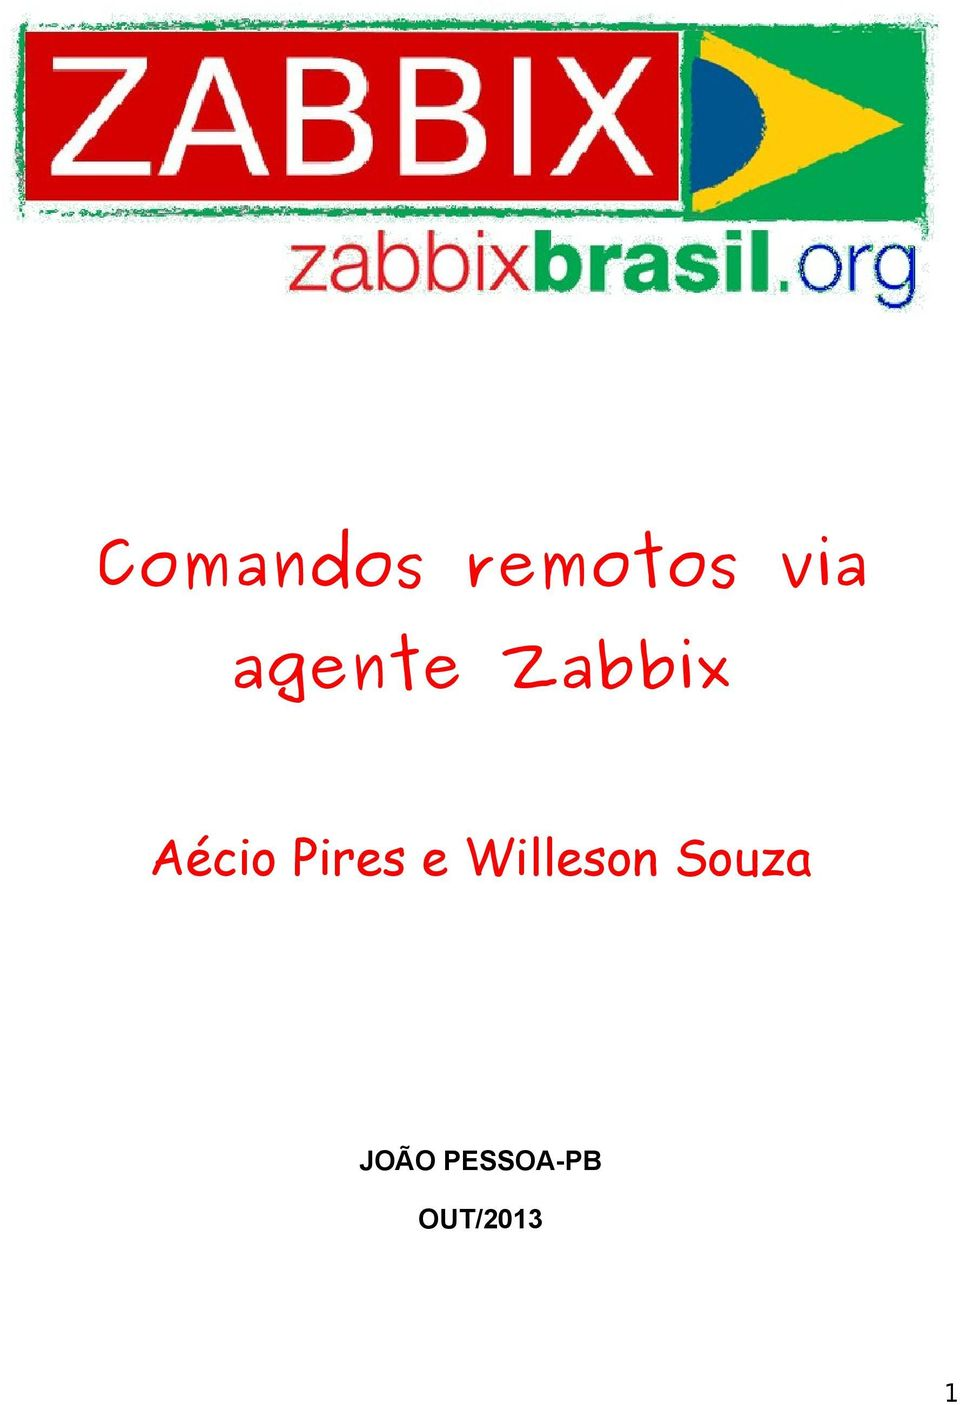 Pires e Willeson Souza